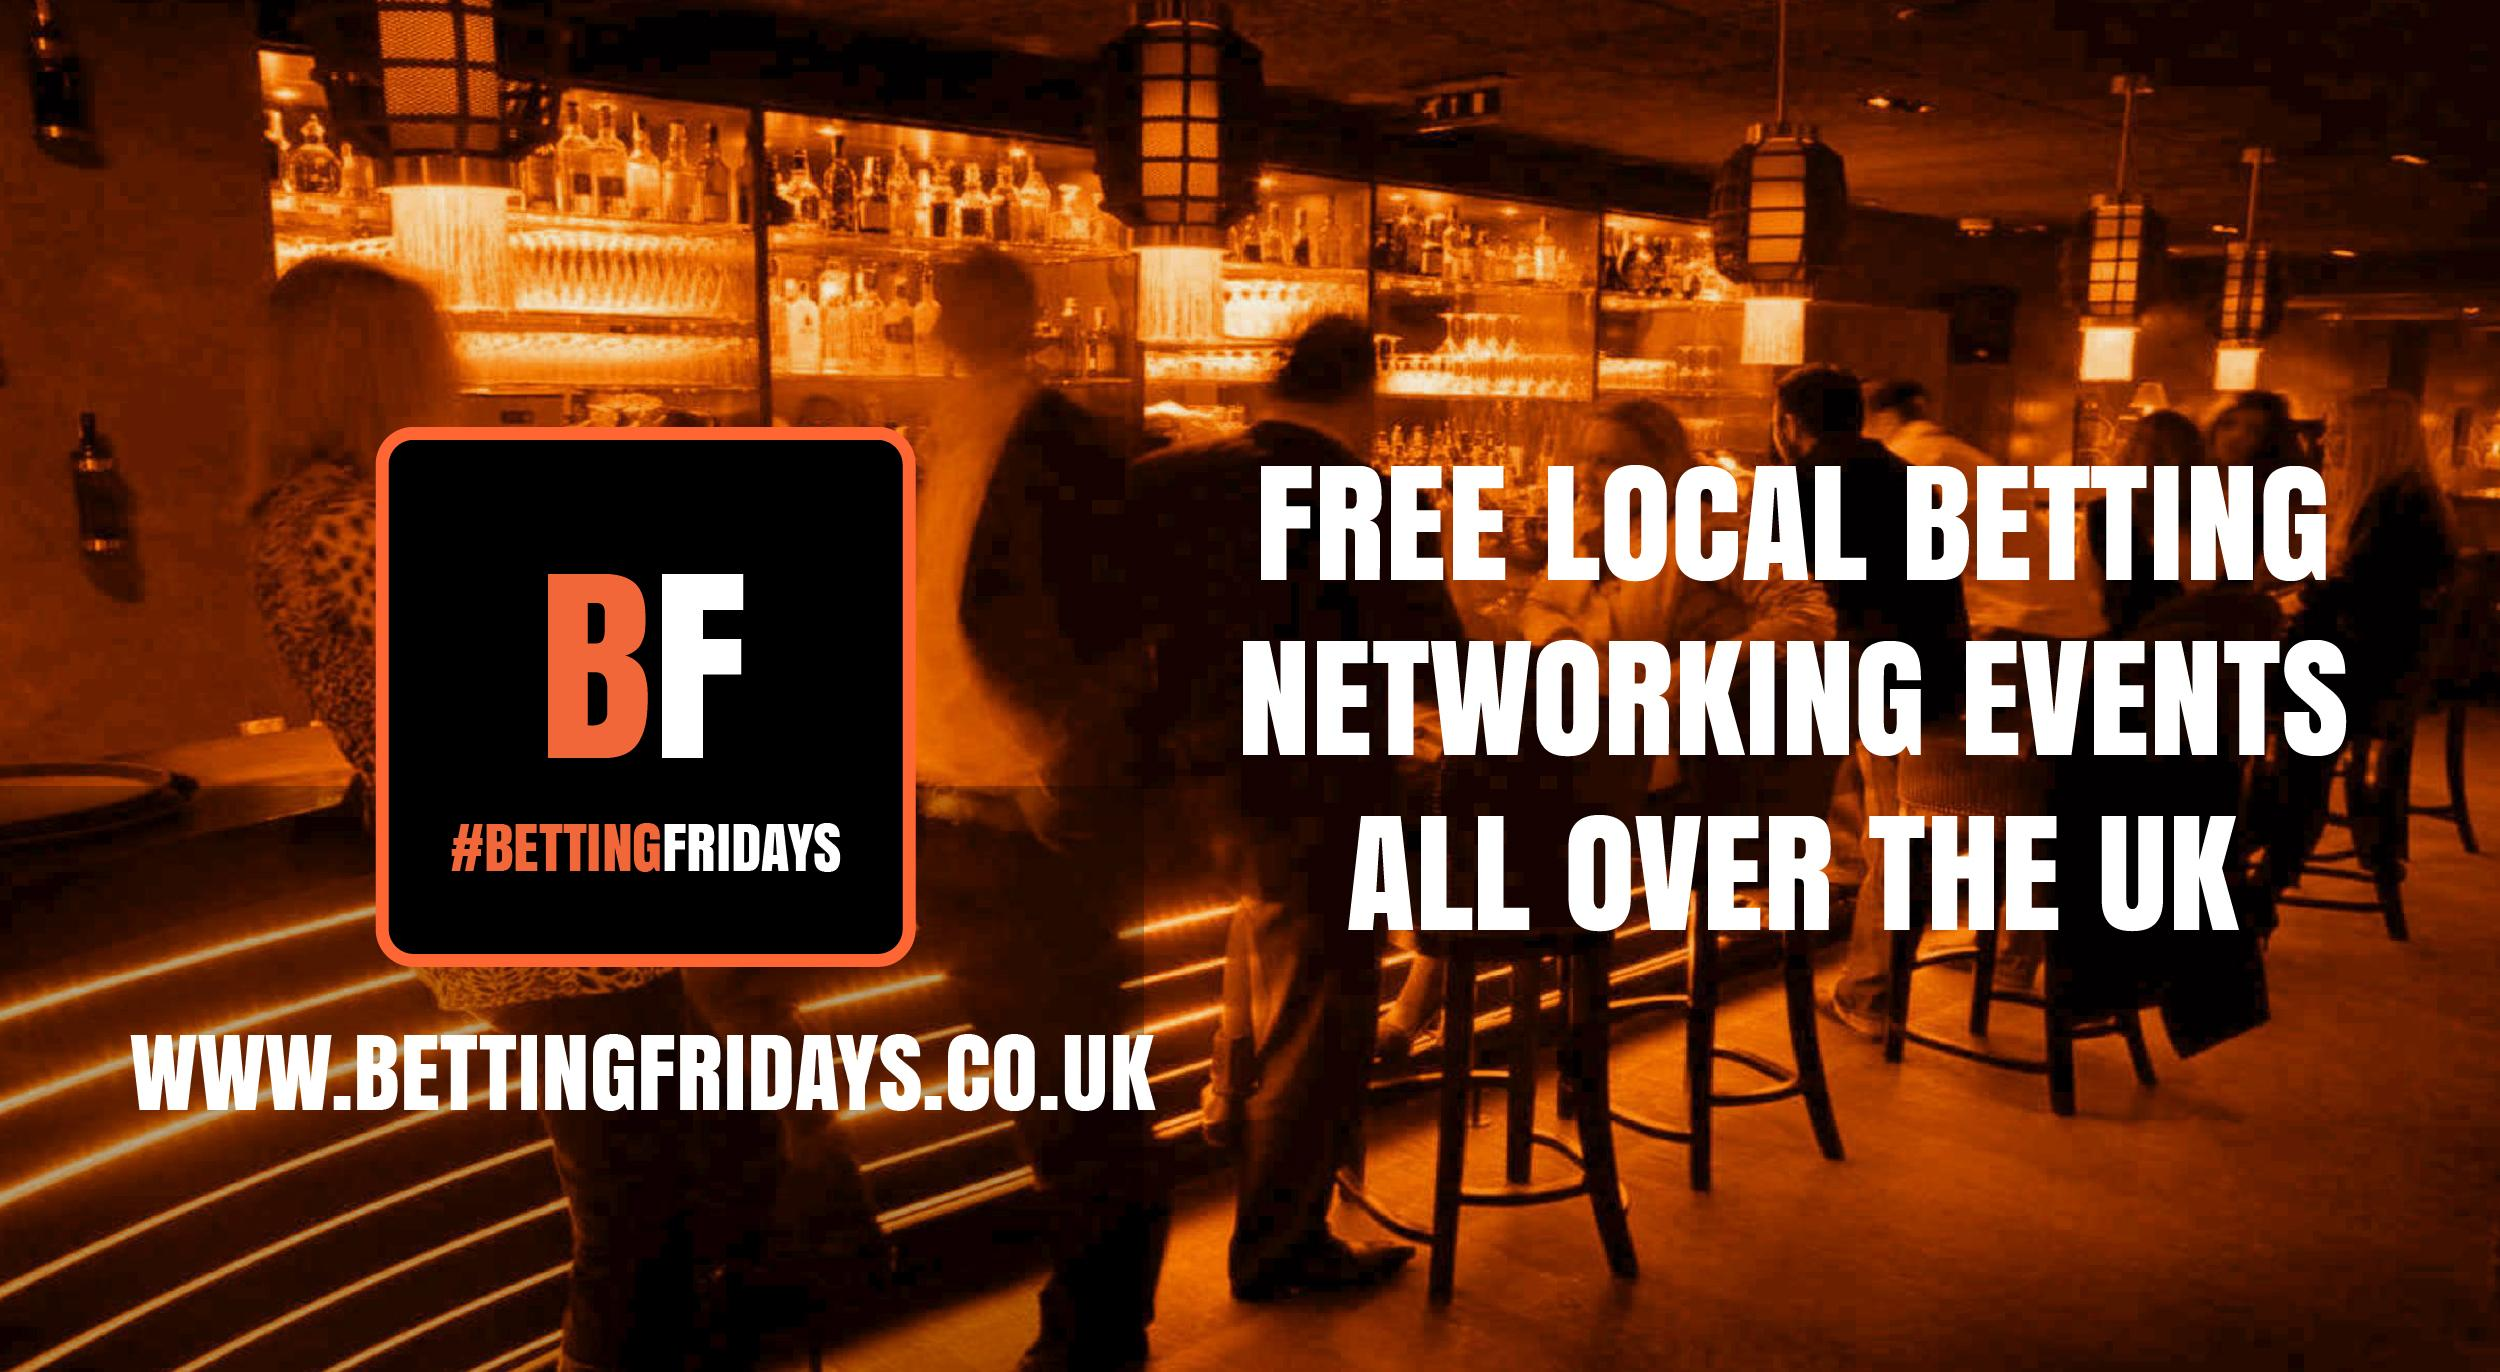 Betting Fridays! Free betting networking event in Huddersfield